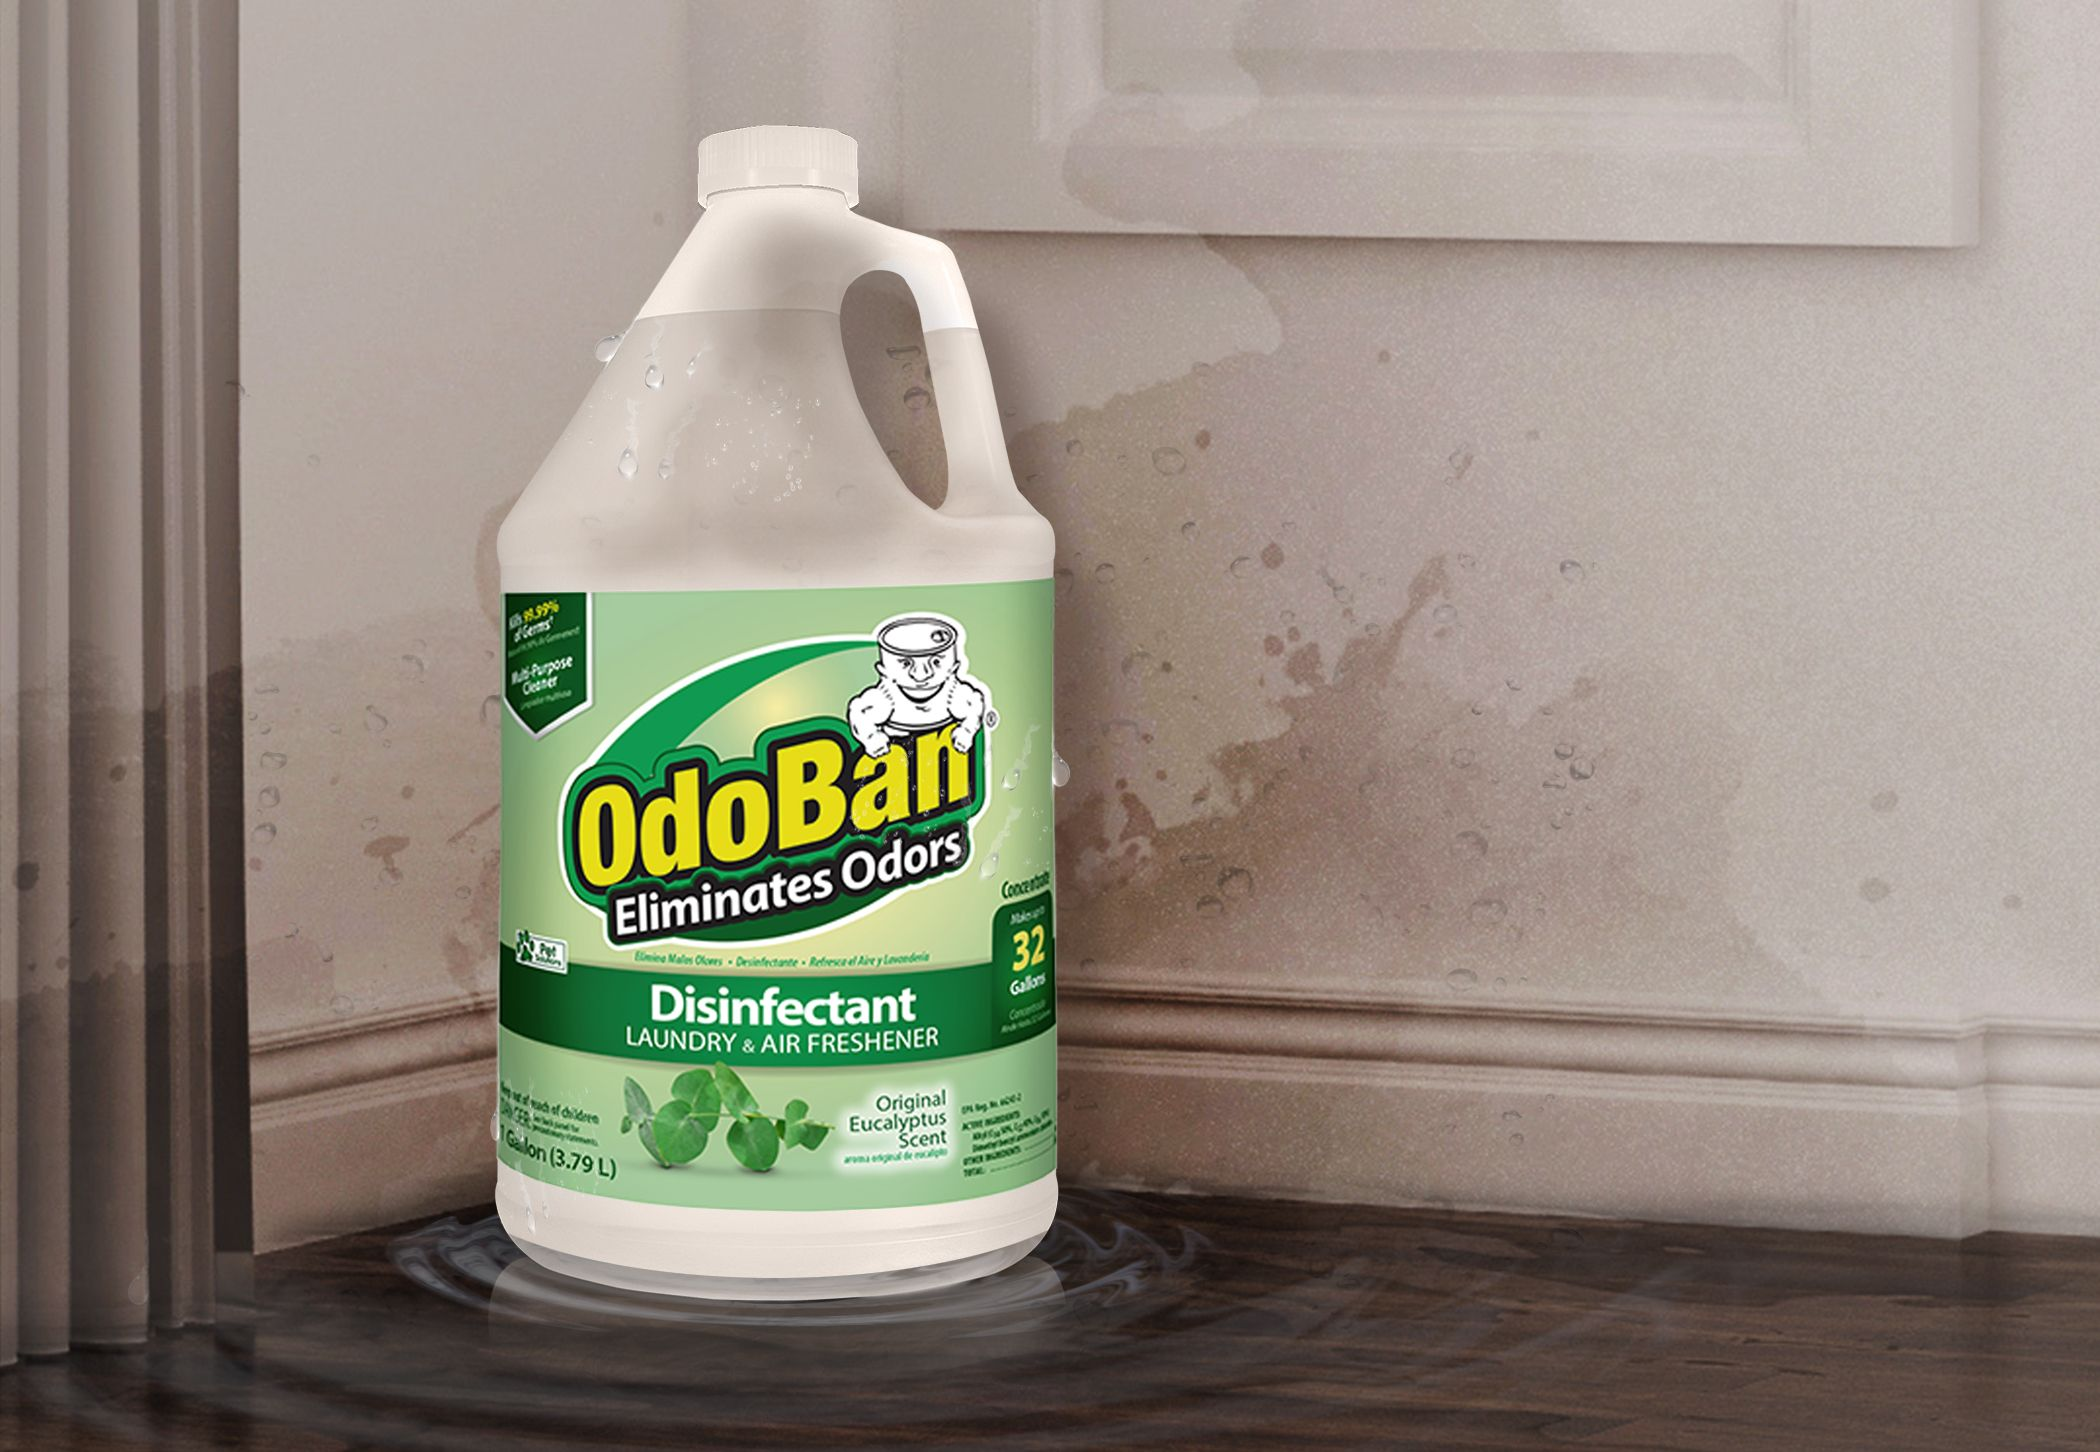 All Products Clean Disinfect And Eliminate Odors Cleaning